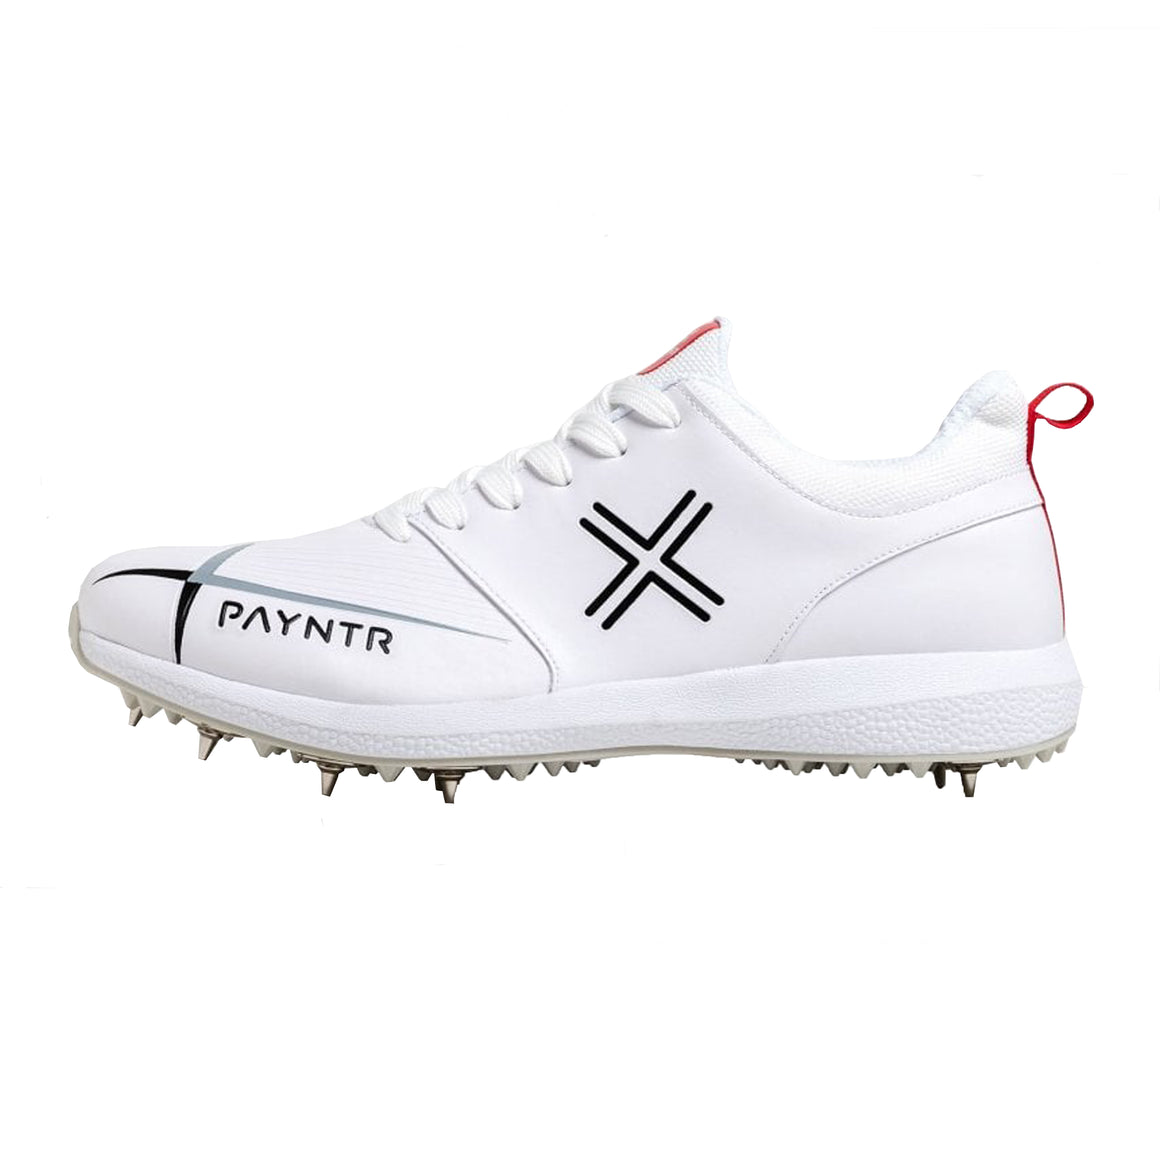 Payntr V Spike Cricket Shoes for Kids in White